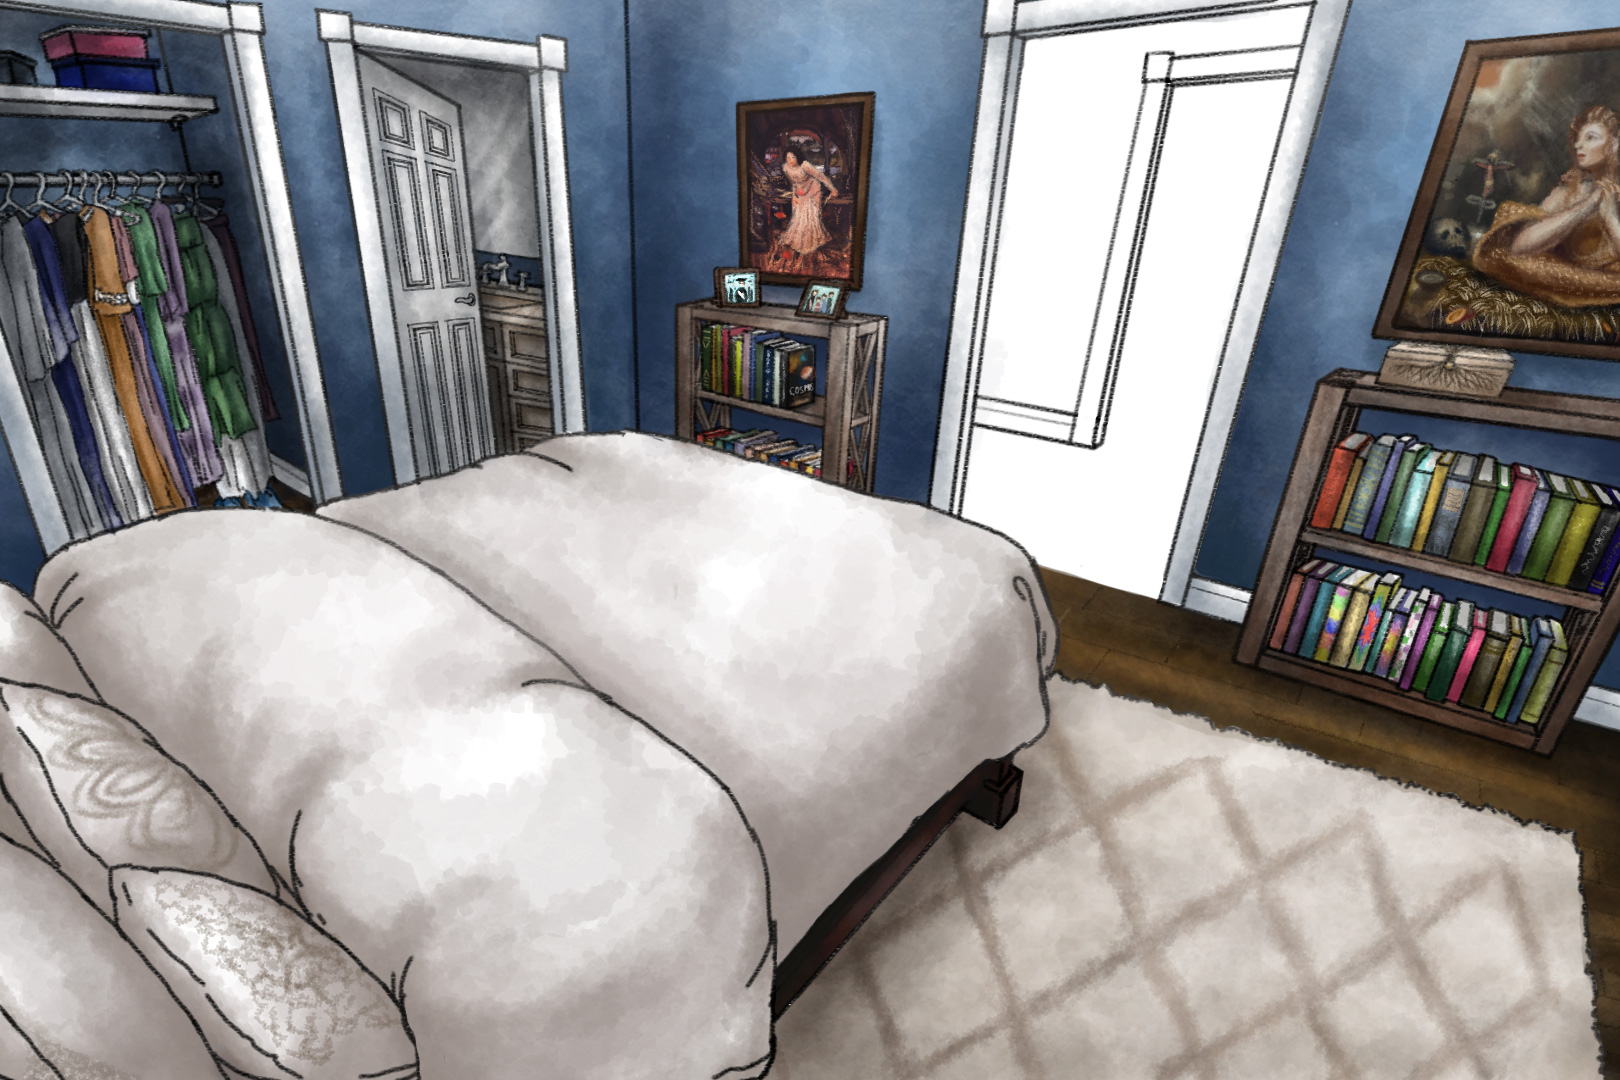 A scene from main character Lina's house.